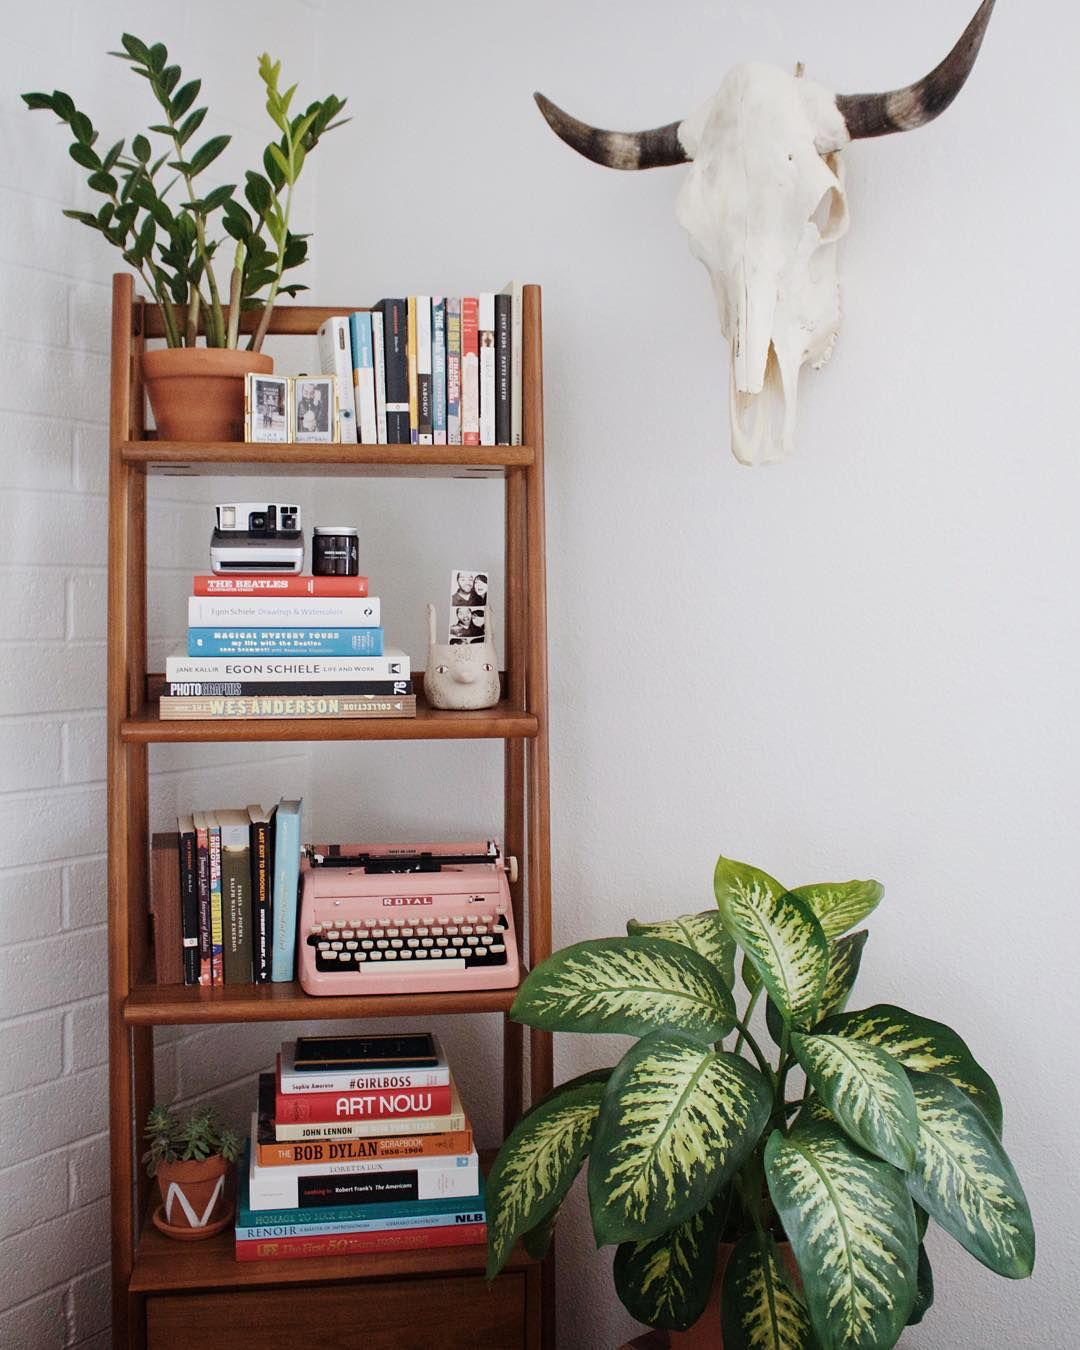 Living Room With Bookshelf: Instagram @newdarlings - Boho/midcentury Home